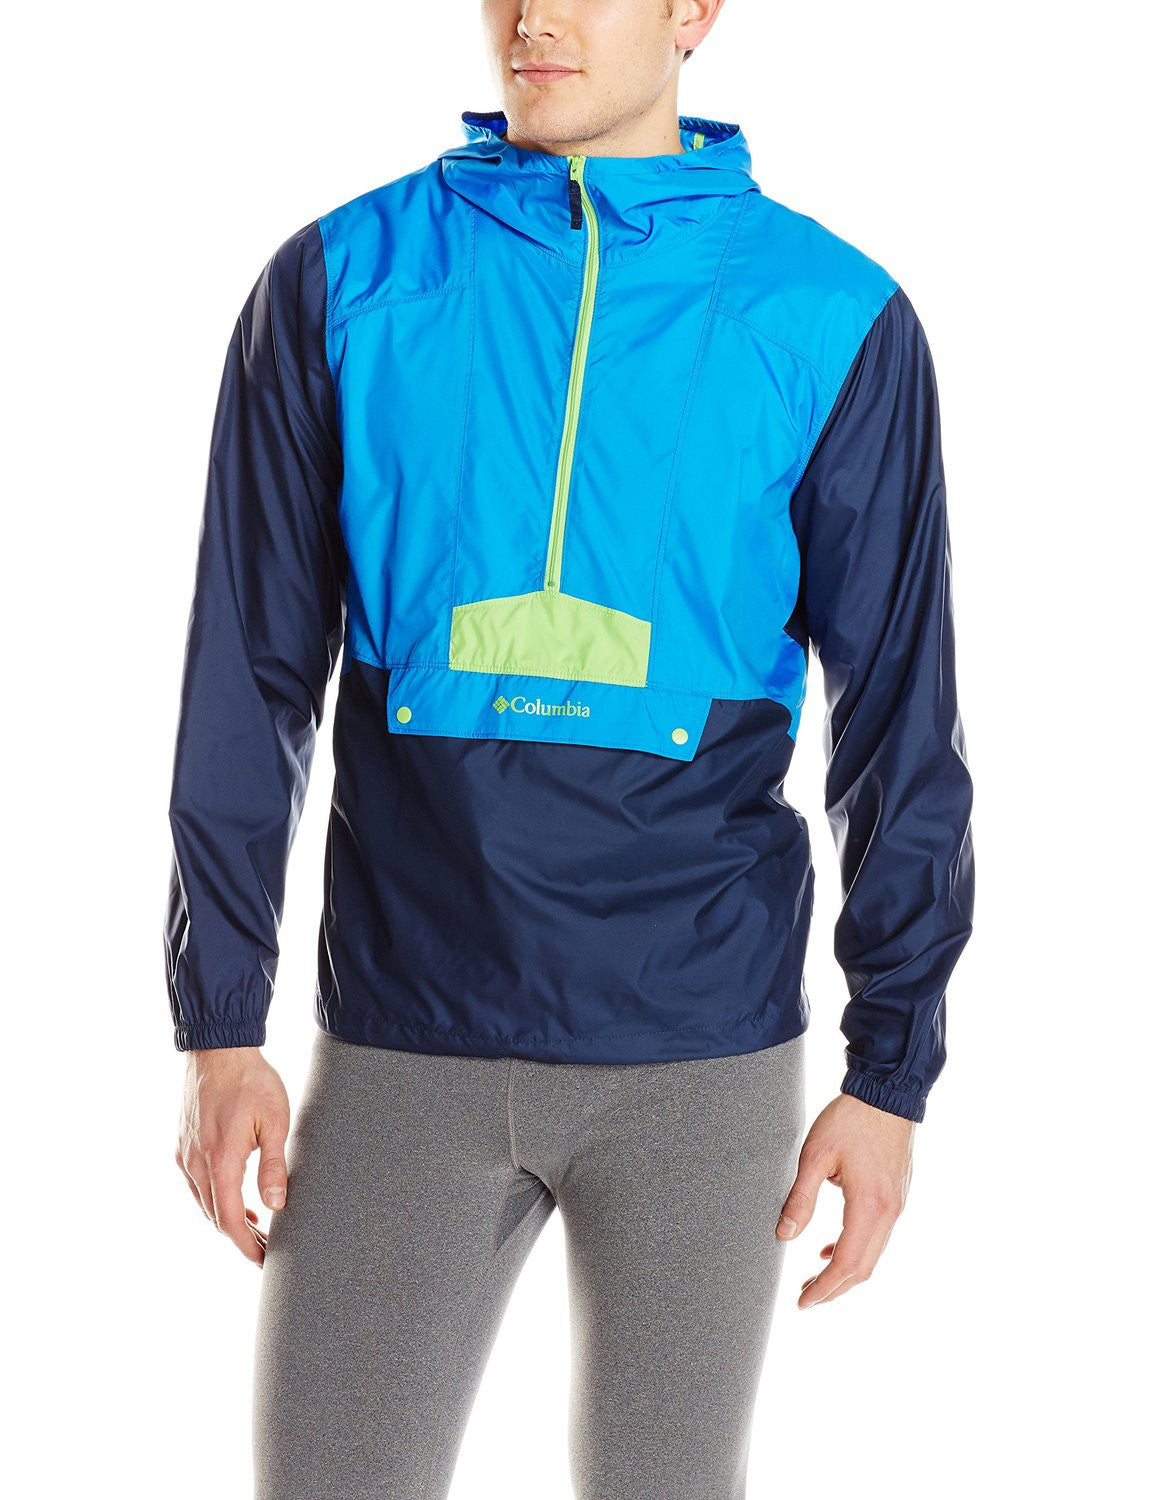 ba1c8f45454 Columbia Flashback Windbreaker Rain Pullover Jacket - Black - Mens ...